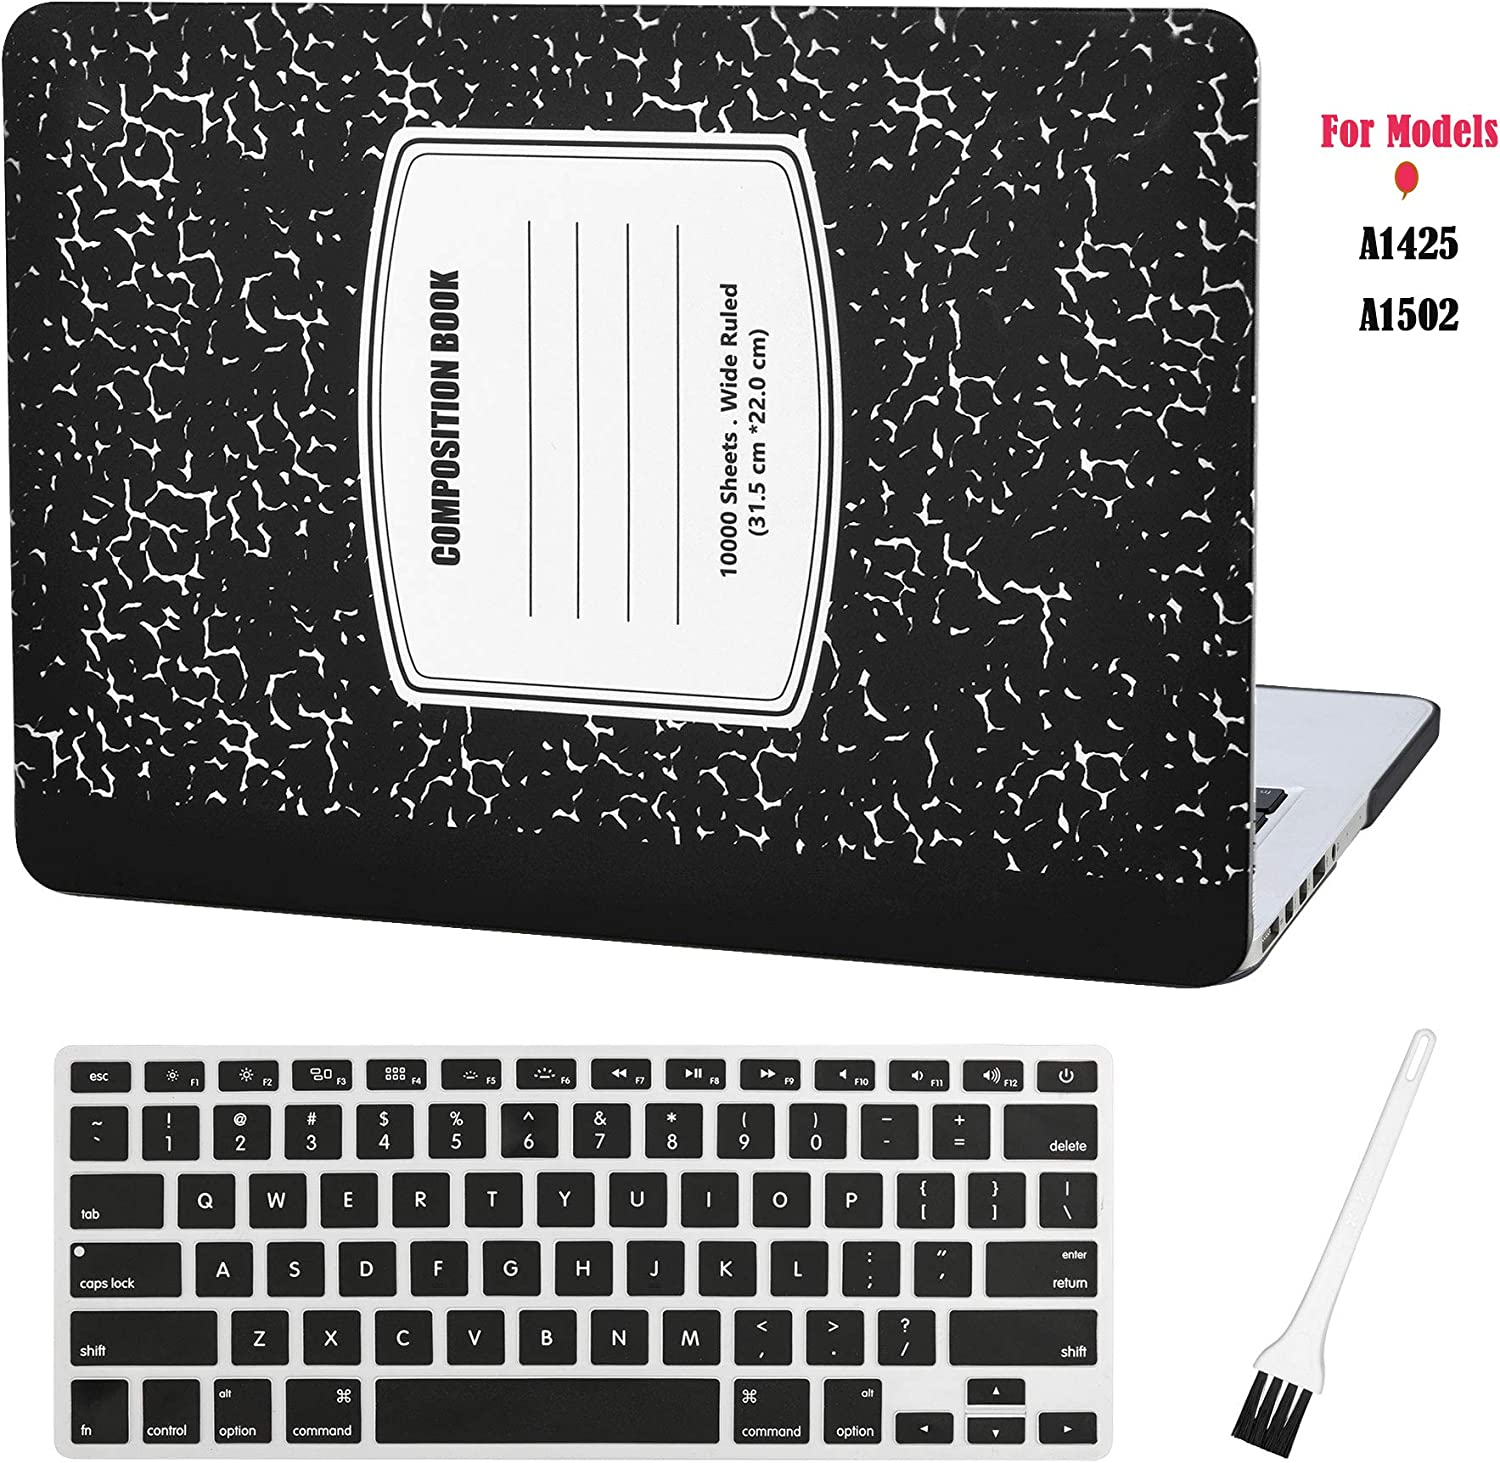 MacBook Pro 13 inch Case Cover A1502 A1425 Plastic Laptop Hard Shell Cover Sleeve Matte Rubberized (2012 2013 2014 2015 Release) with Silicone Keyboad Cover and Dust Brush(Notebook Pattern-Black)